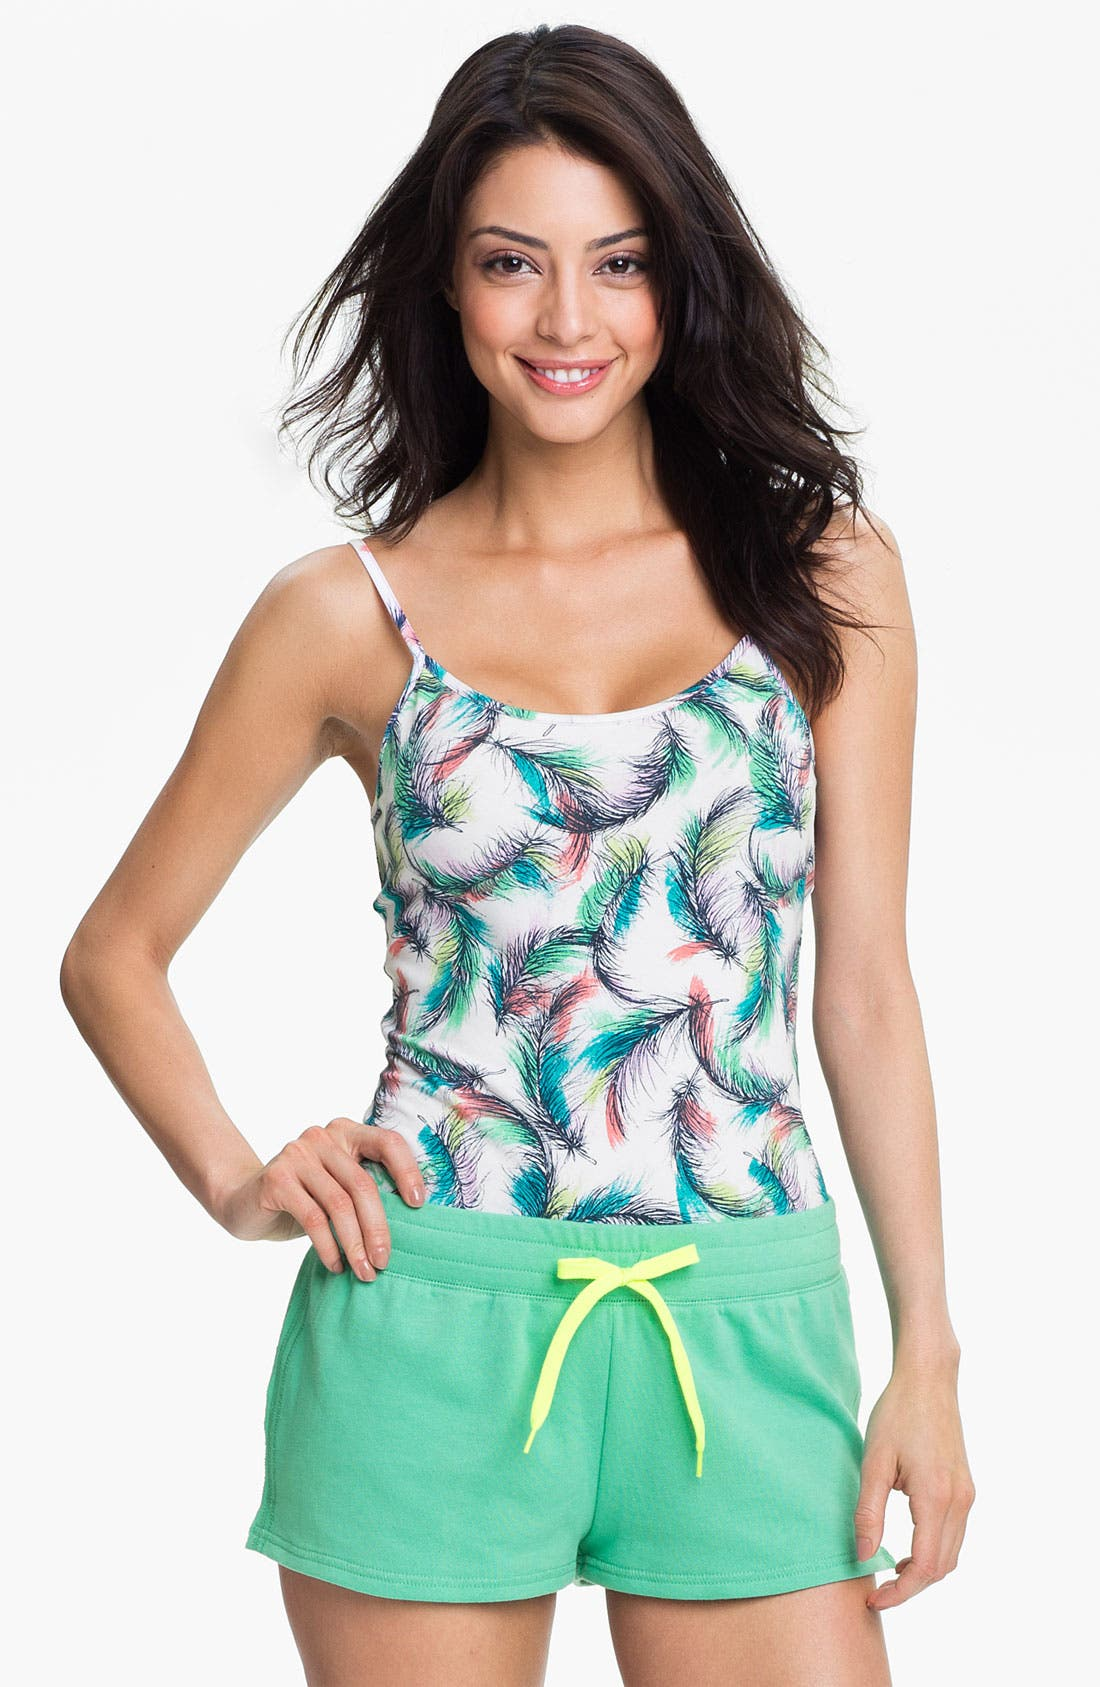 Main Image - Steve Madden 'Beneath It All' Camisole